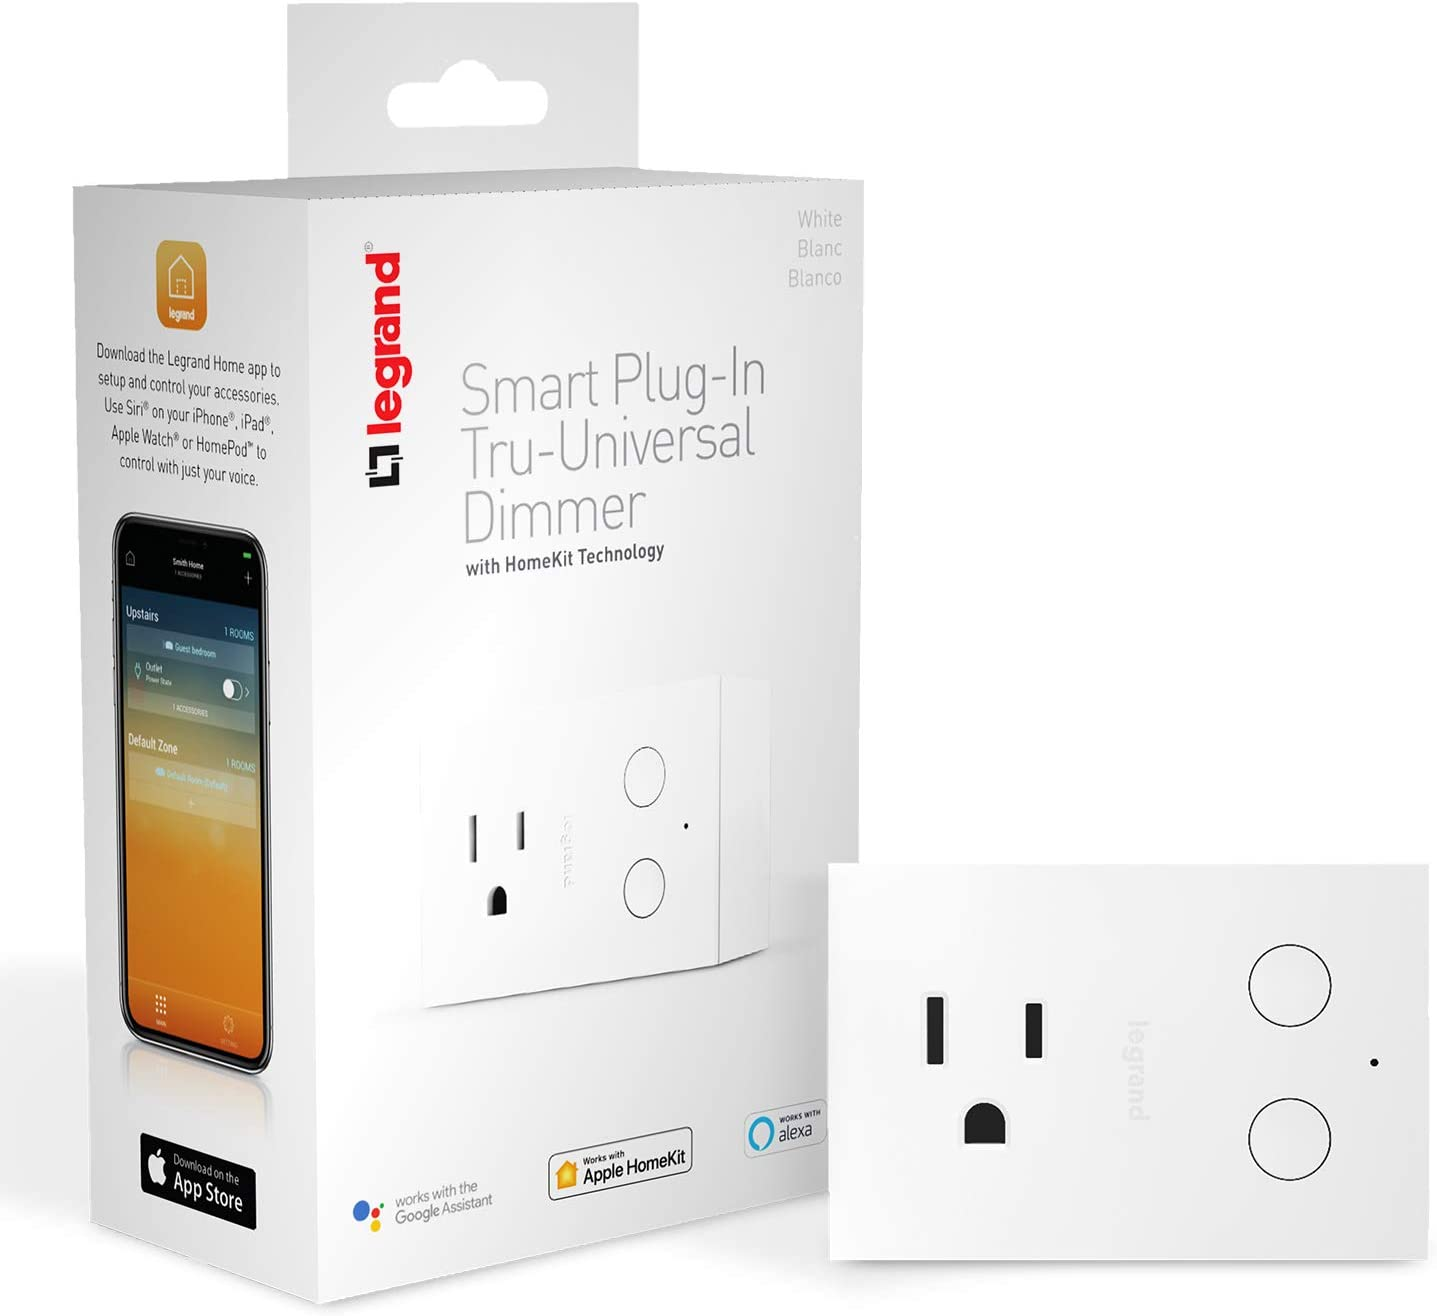 Legrand - OnQ HKRP20 Smart Switch Setup & Can Be Used Hub Works with Apple HomeKit, No Wiring Required, iOS only, White